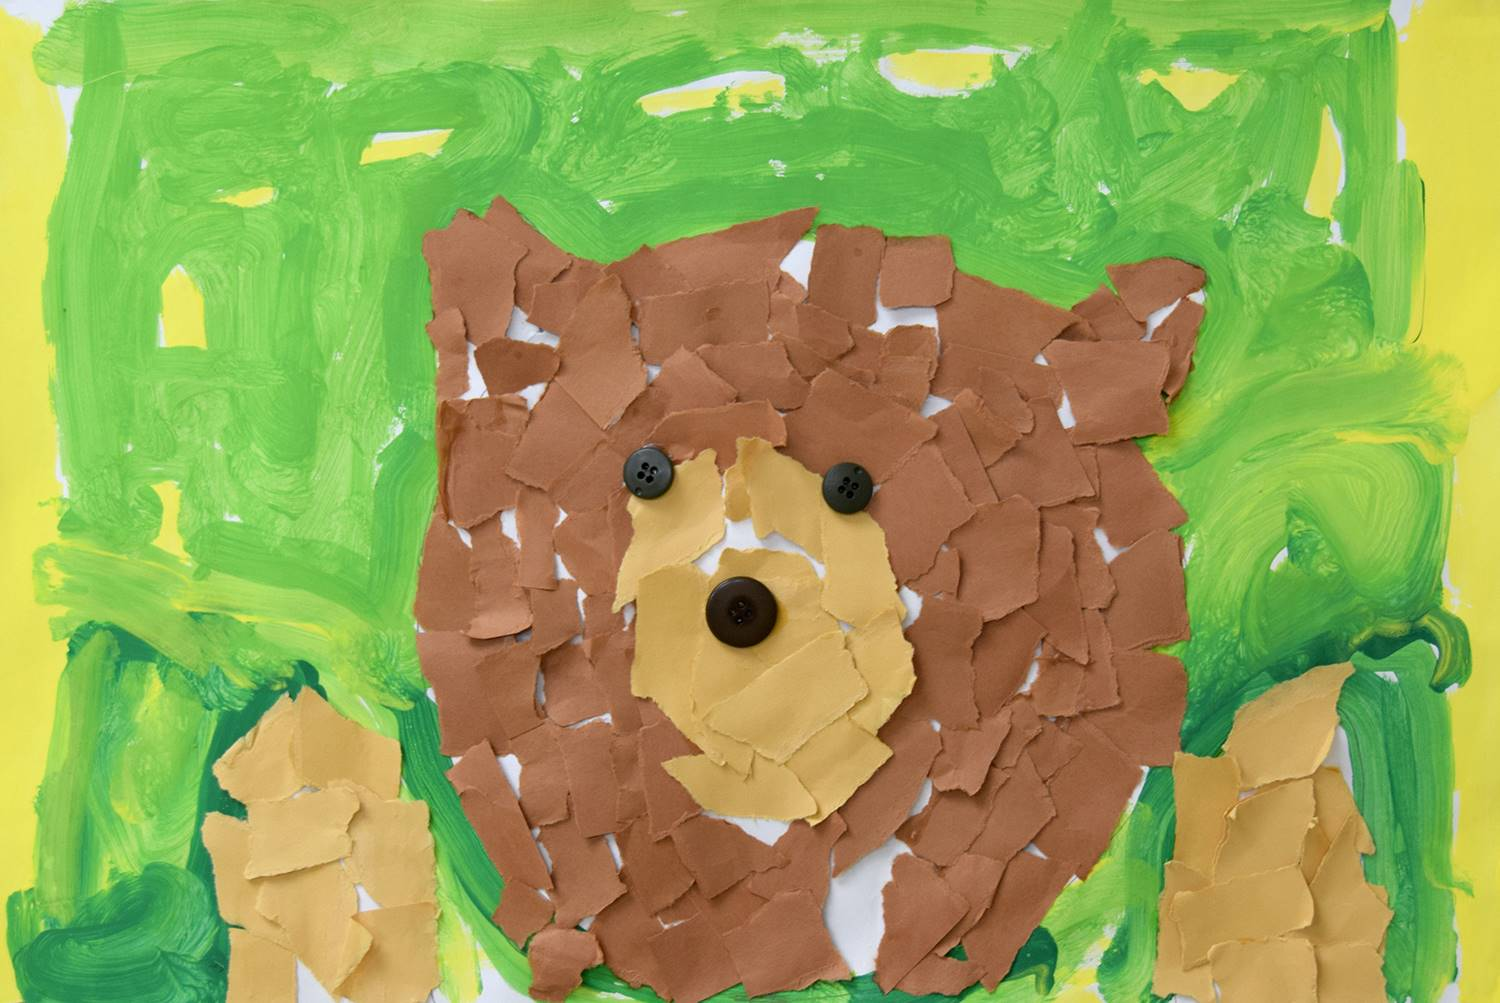 A brown bear made out of torn construction paper on a yellow and green background was created by Wil